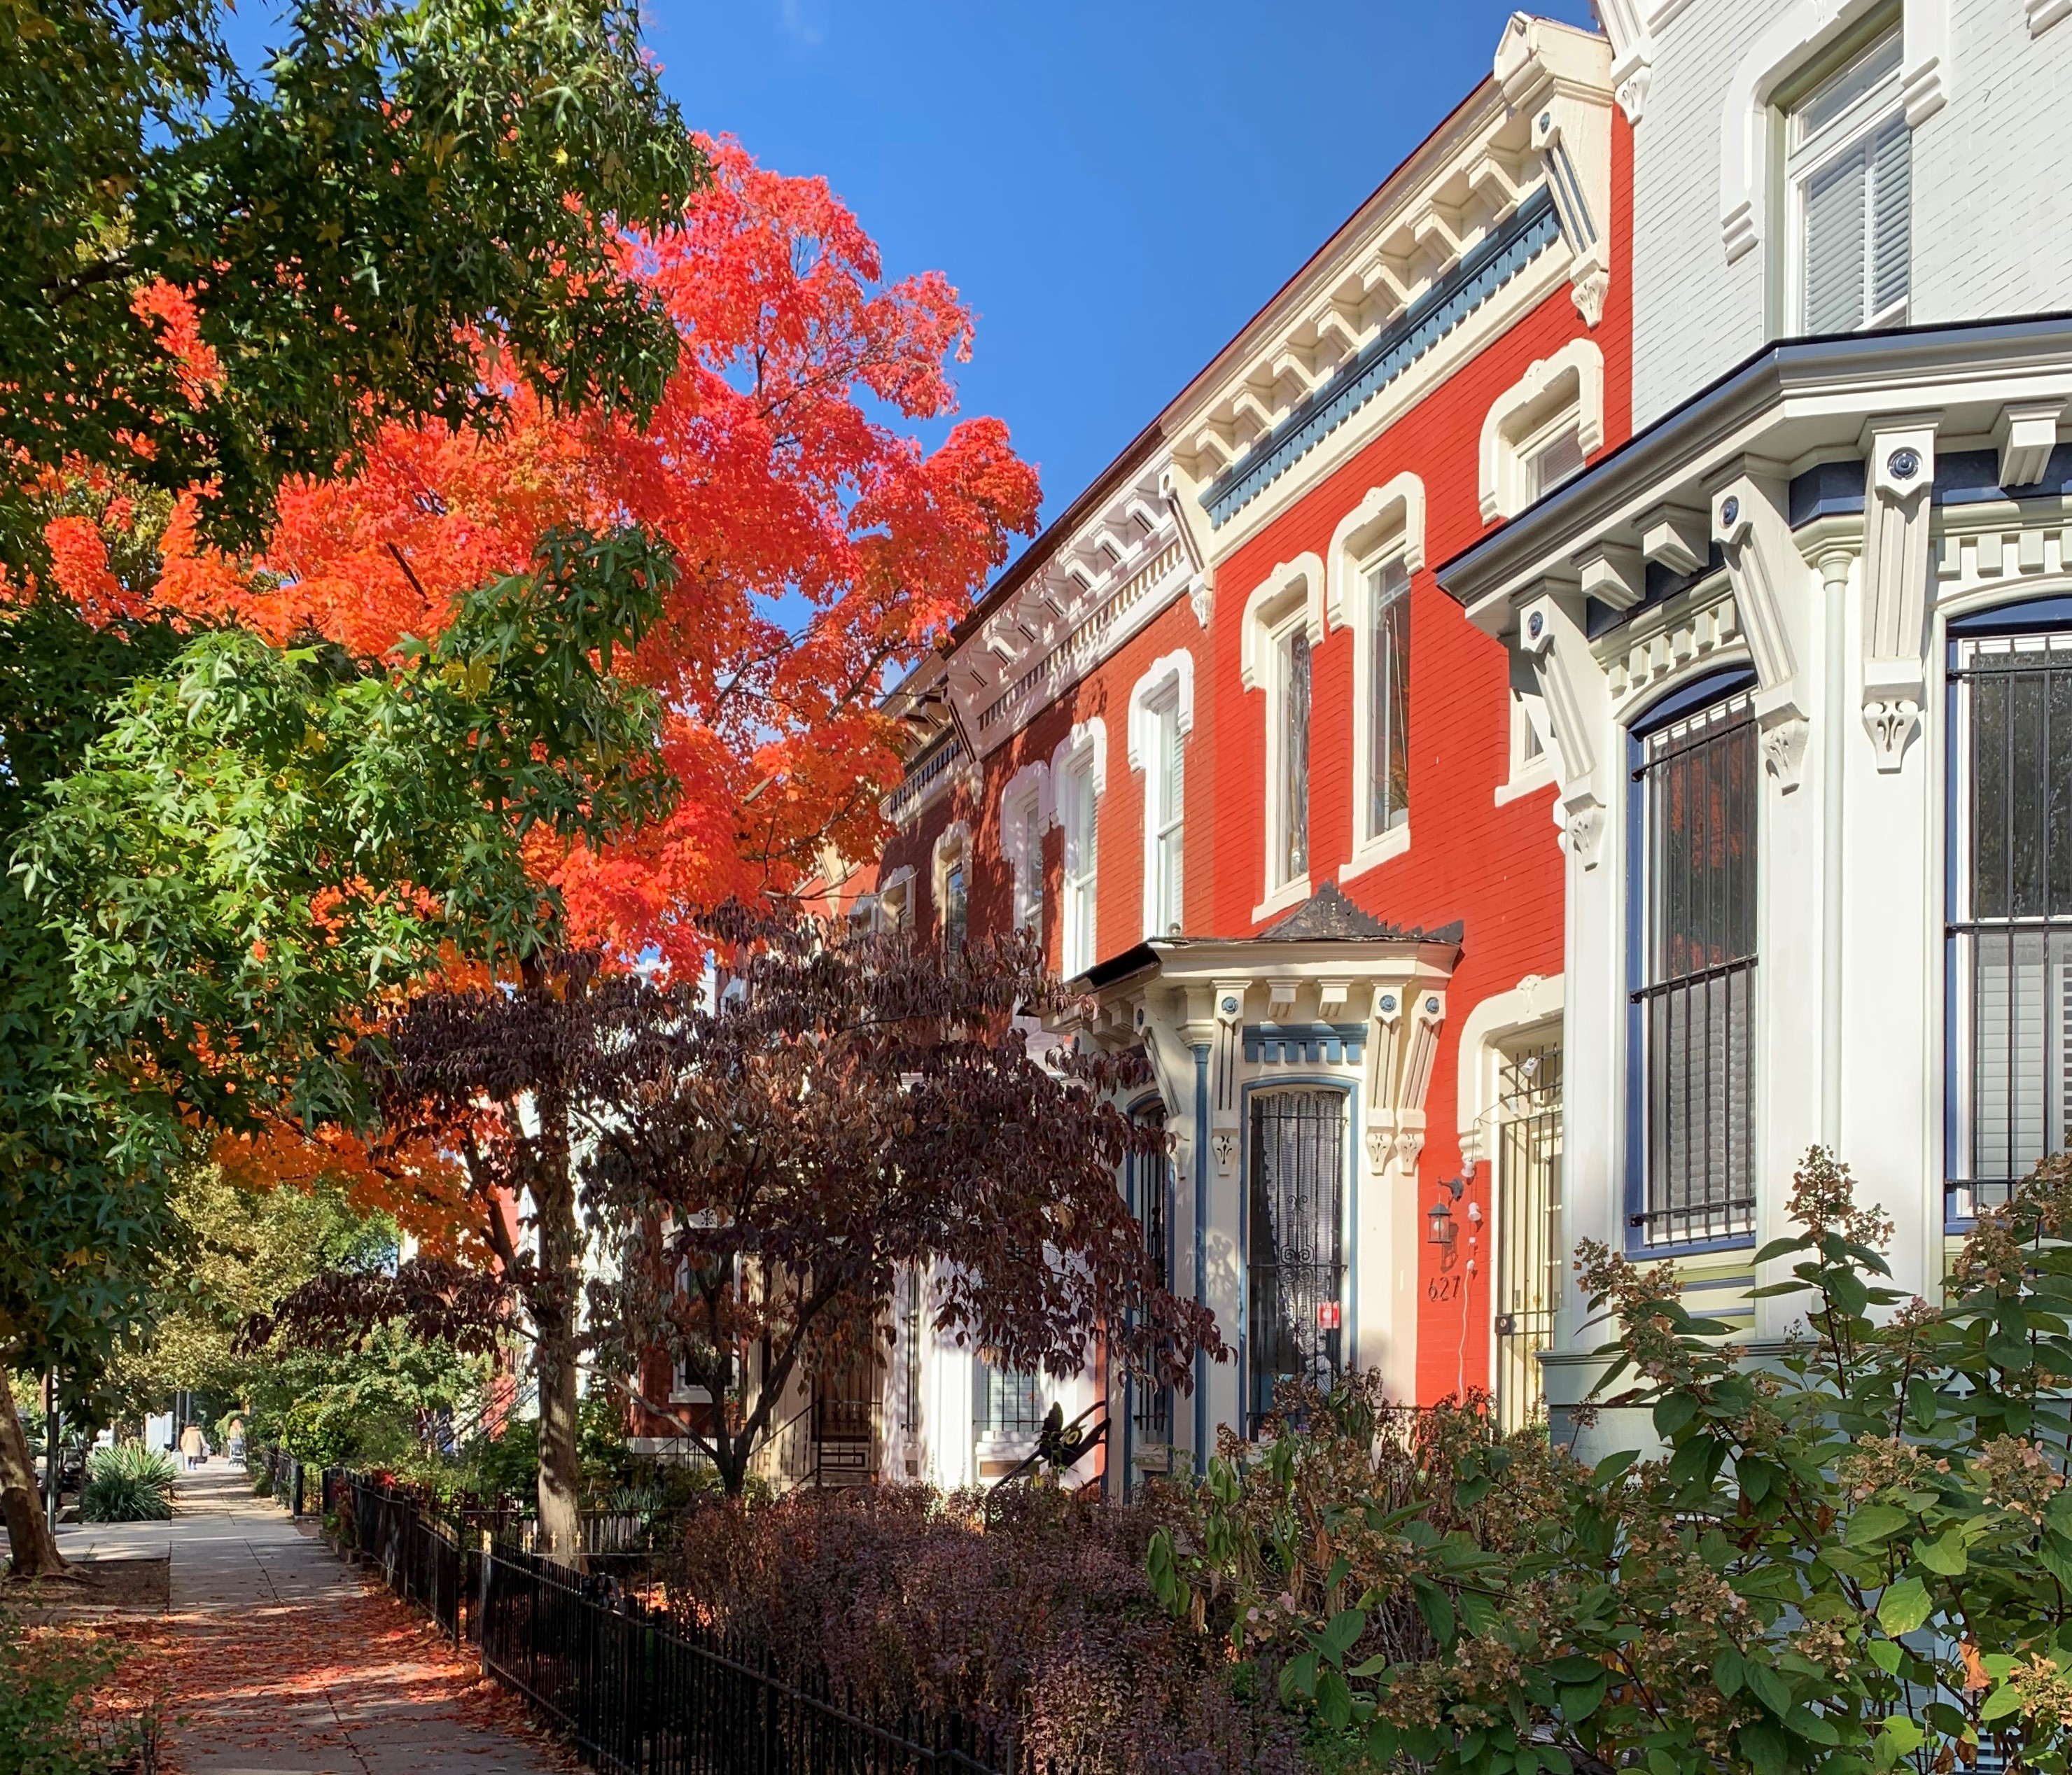 Luxury Real Estate & Homes For Sale in Shaw, Washington, DC. Marion and Q Street NW. Artyom Shmatko Luxury Real Estate Agent